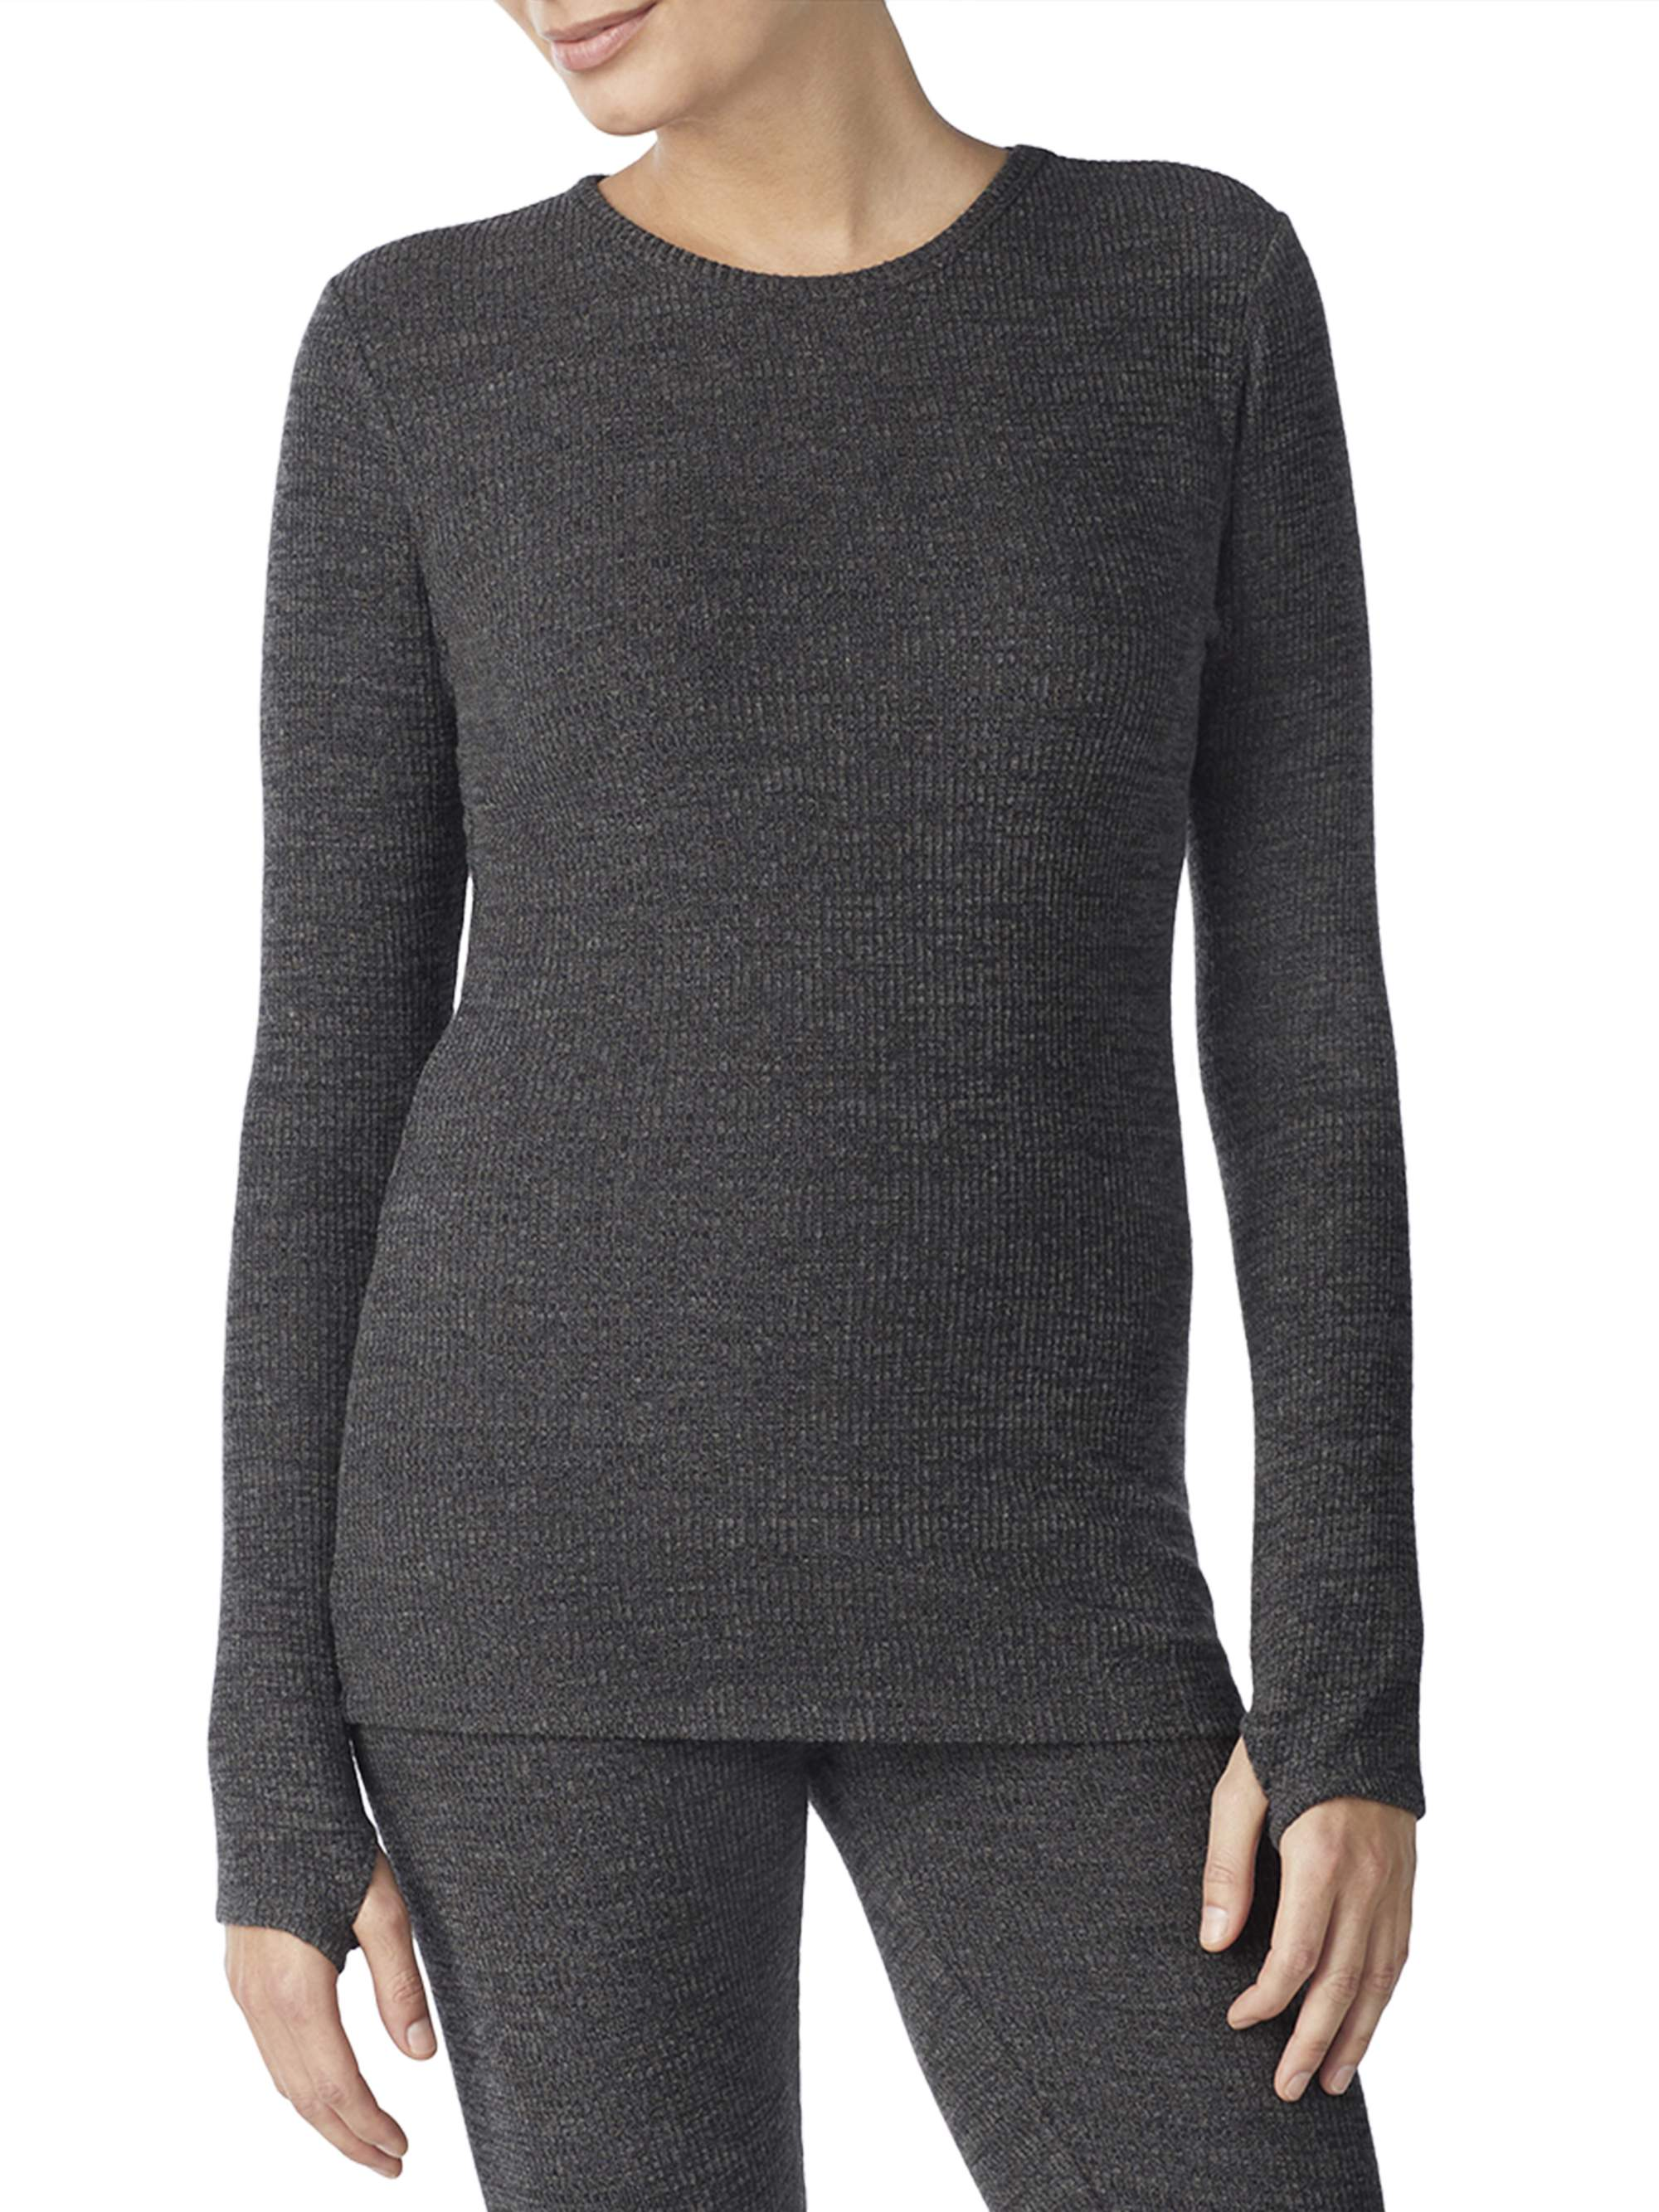 Women's Long Sleeve Brushed Sweater Knit Crew Neck Top